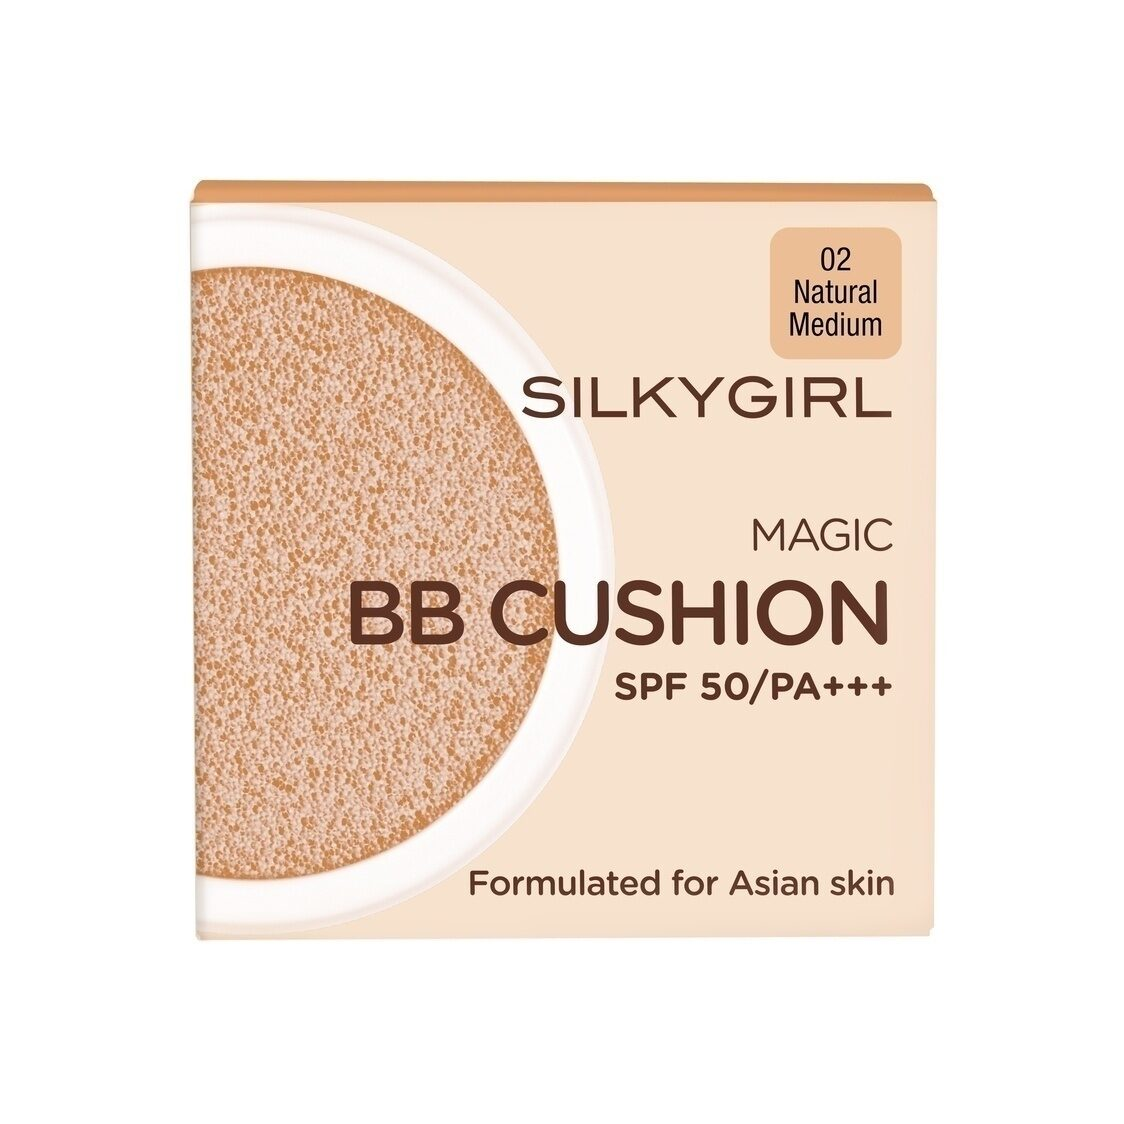 Magic BB Cushion In Natural Medium